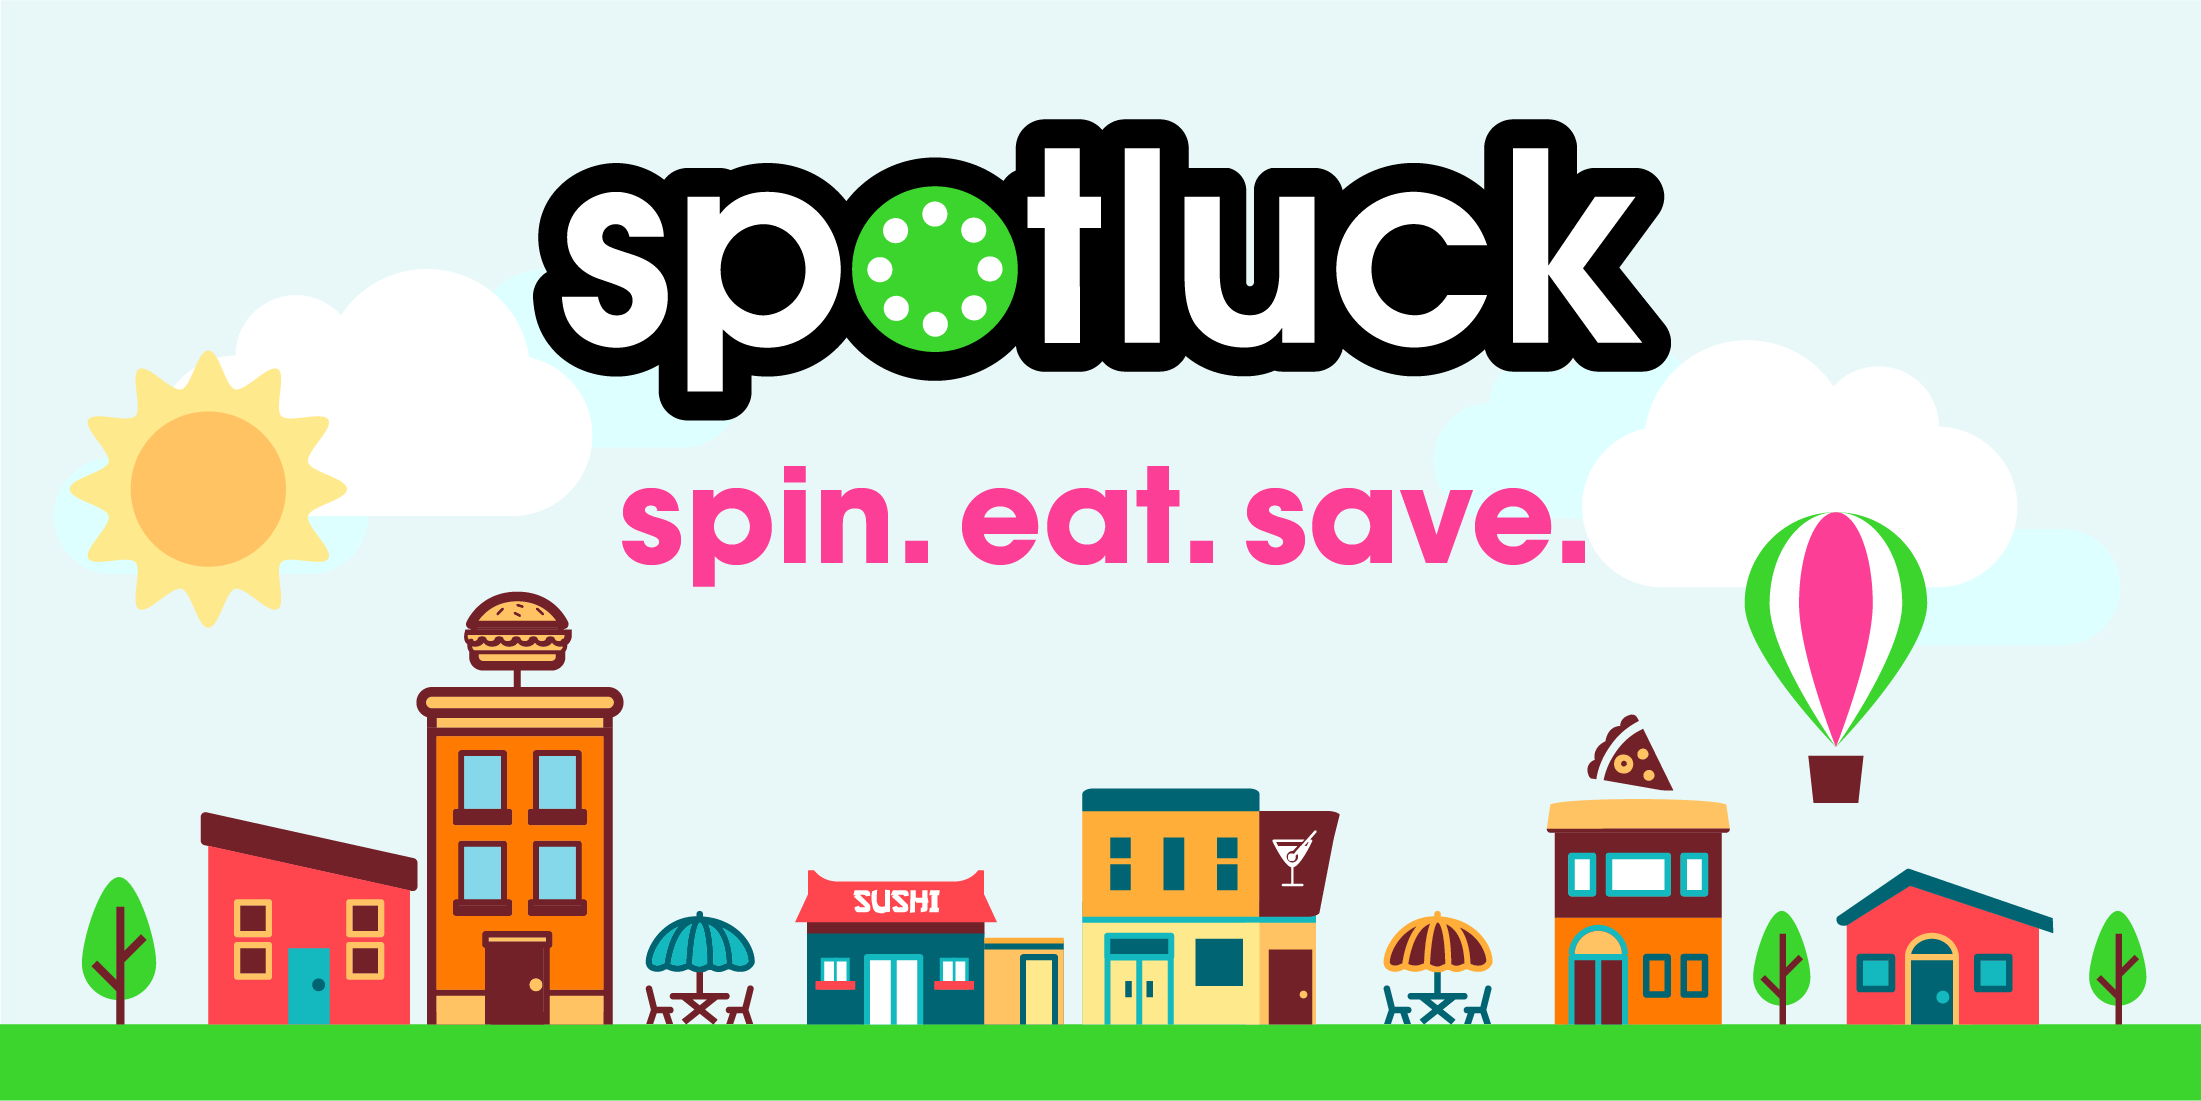 Restaurant Discounts With A Spin | Spotluck